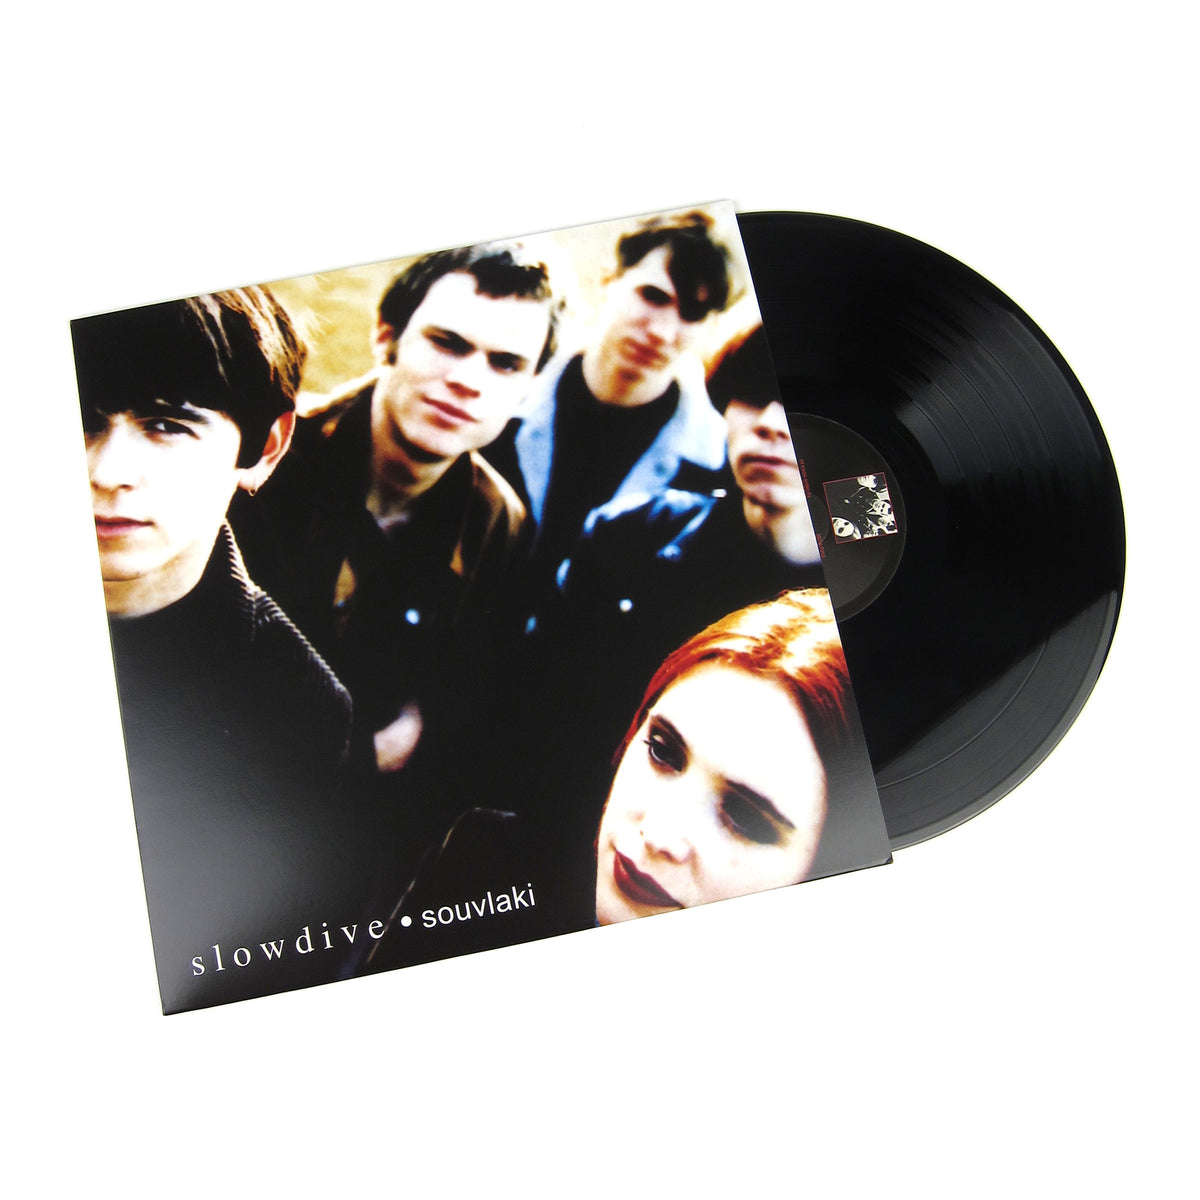 Slowdive: Souvlaki (Music On Vinyl 180g) Vinyl LP